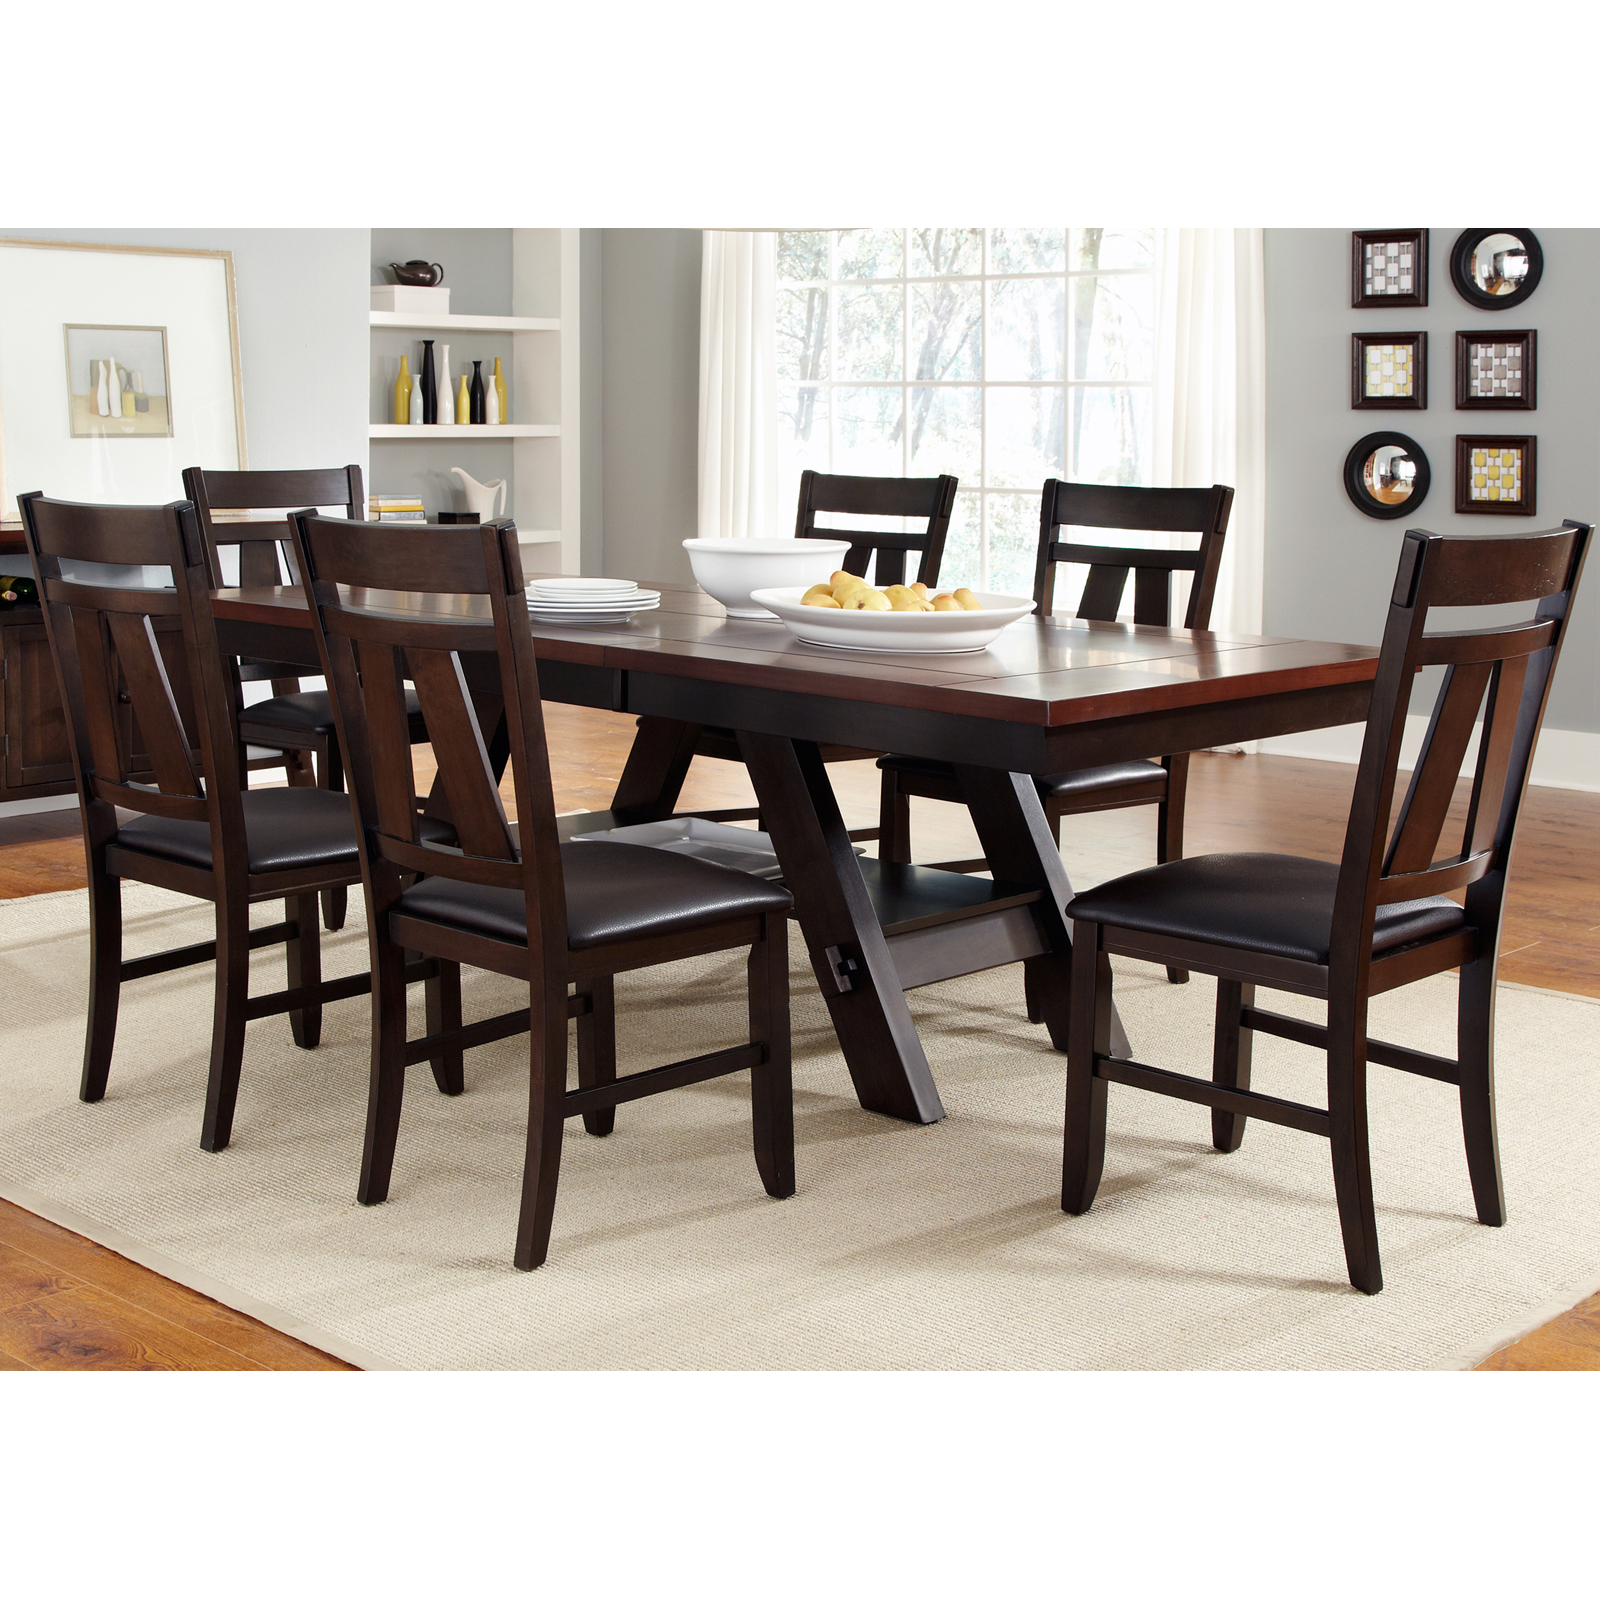 A r t furniture greenpoint oval dining table in coffee bean - A R T Furniture Greenpoint Oval Dining Table In Coffee Bean 9